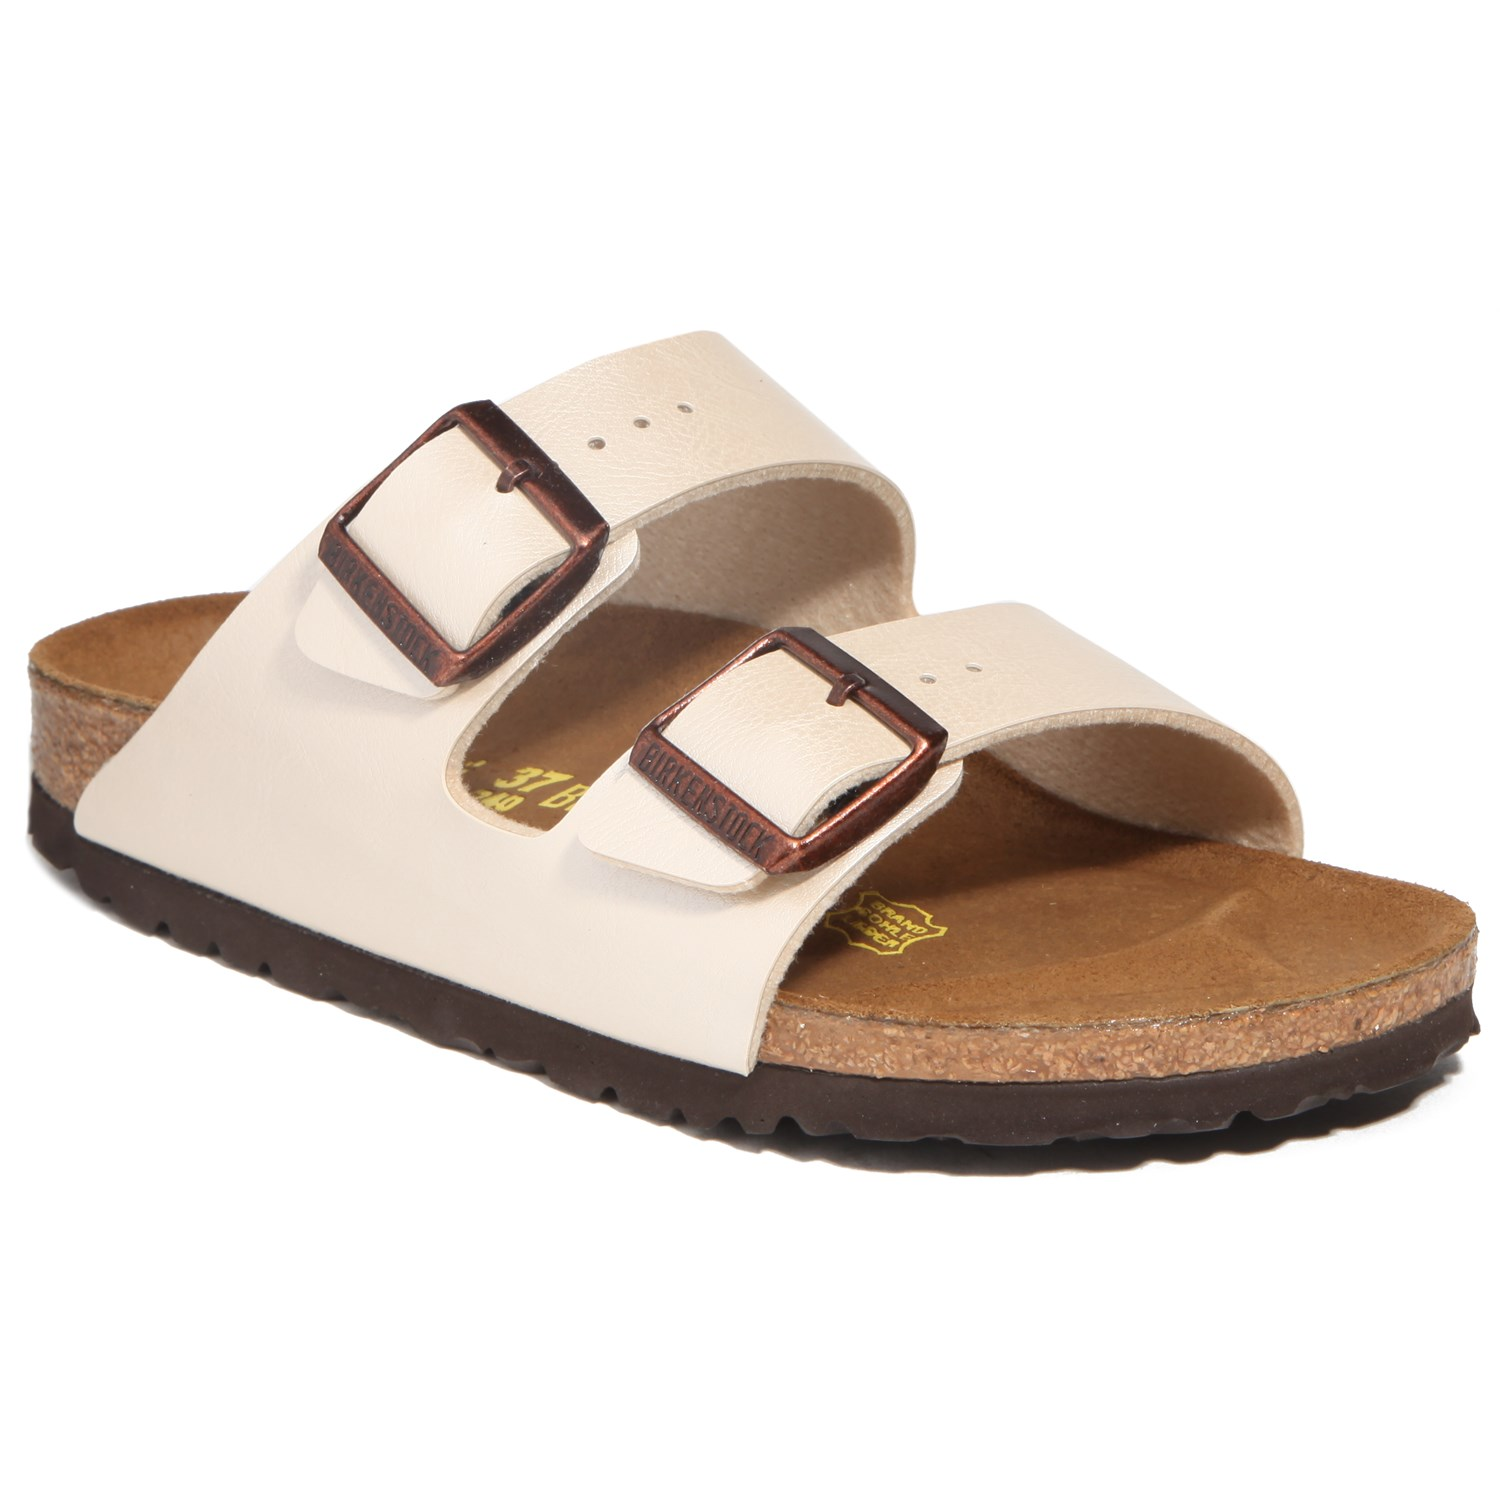 64db022cd862 Birkenstock Arizona Birko-Flor™ Sandals - Women s